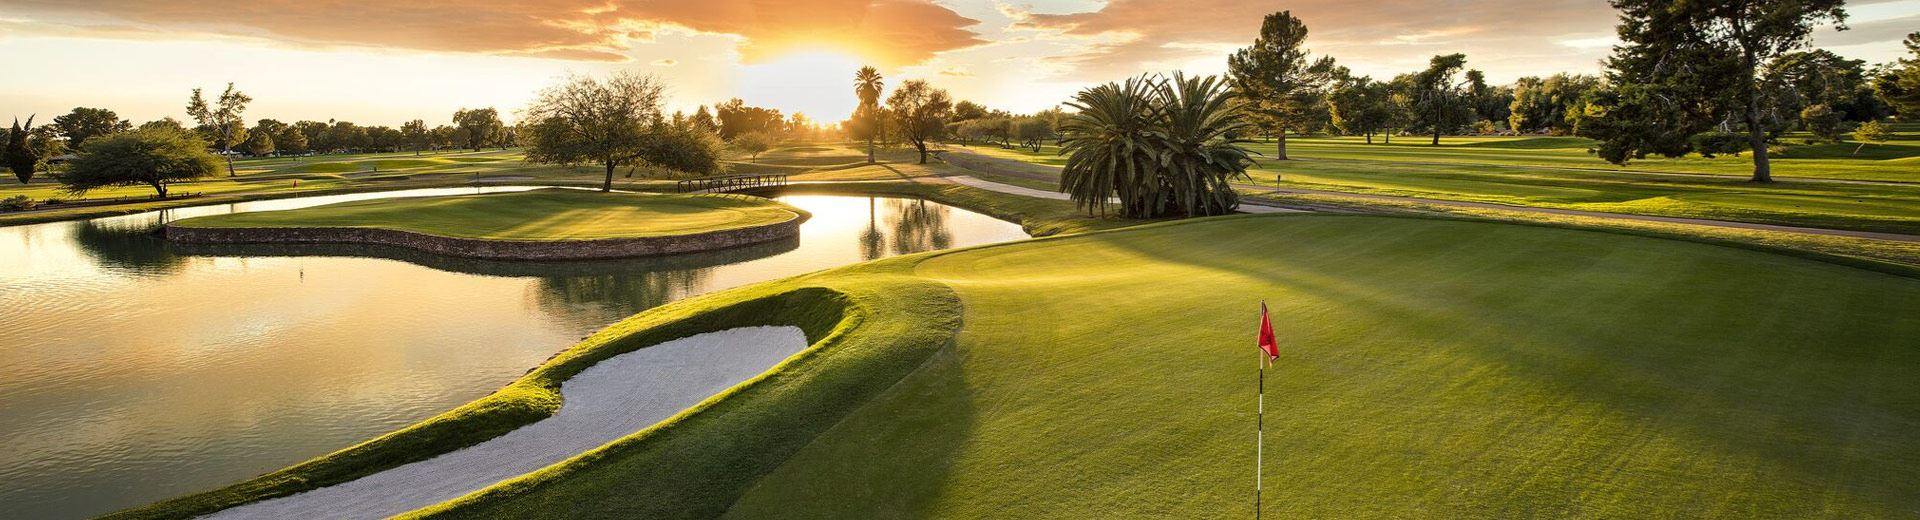 Golf courses & Tee Times at The Wigwam Resort, Arizona